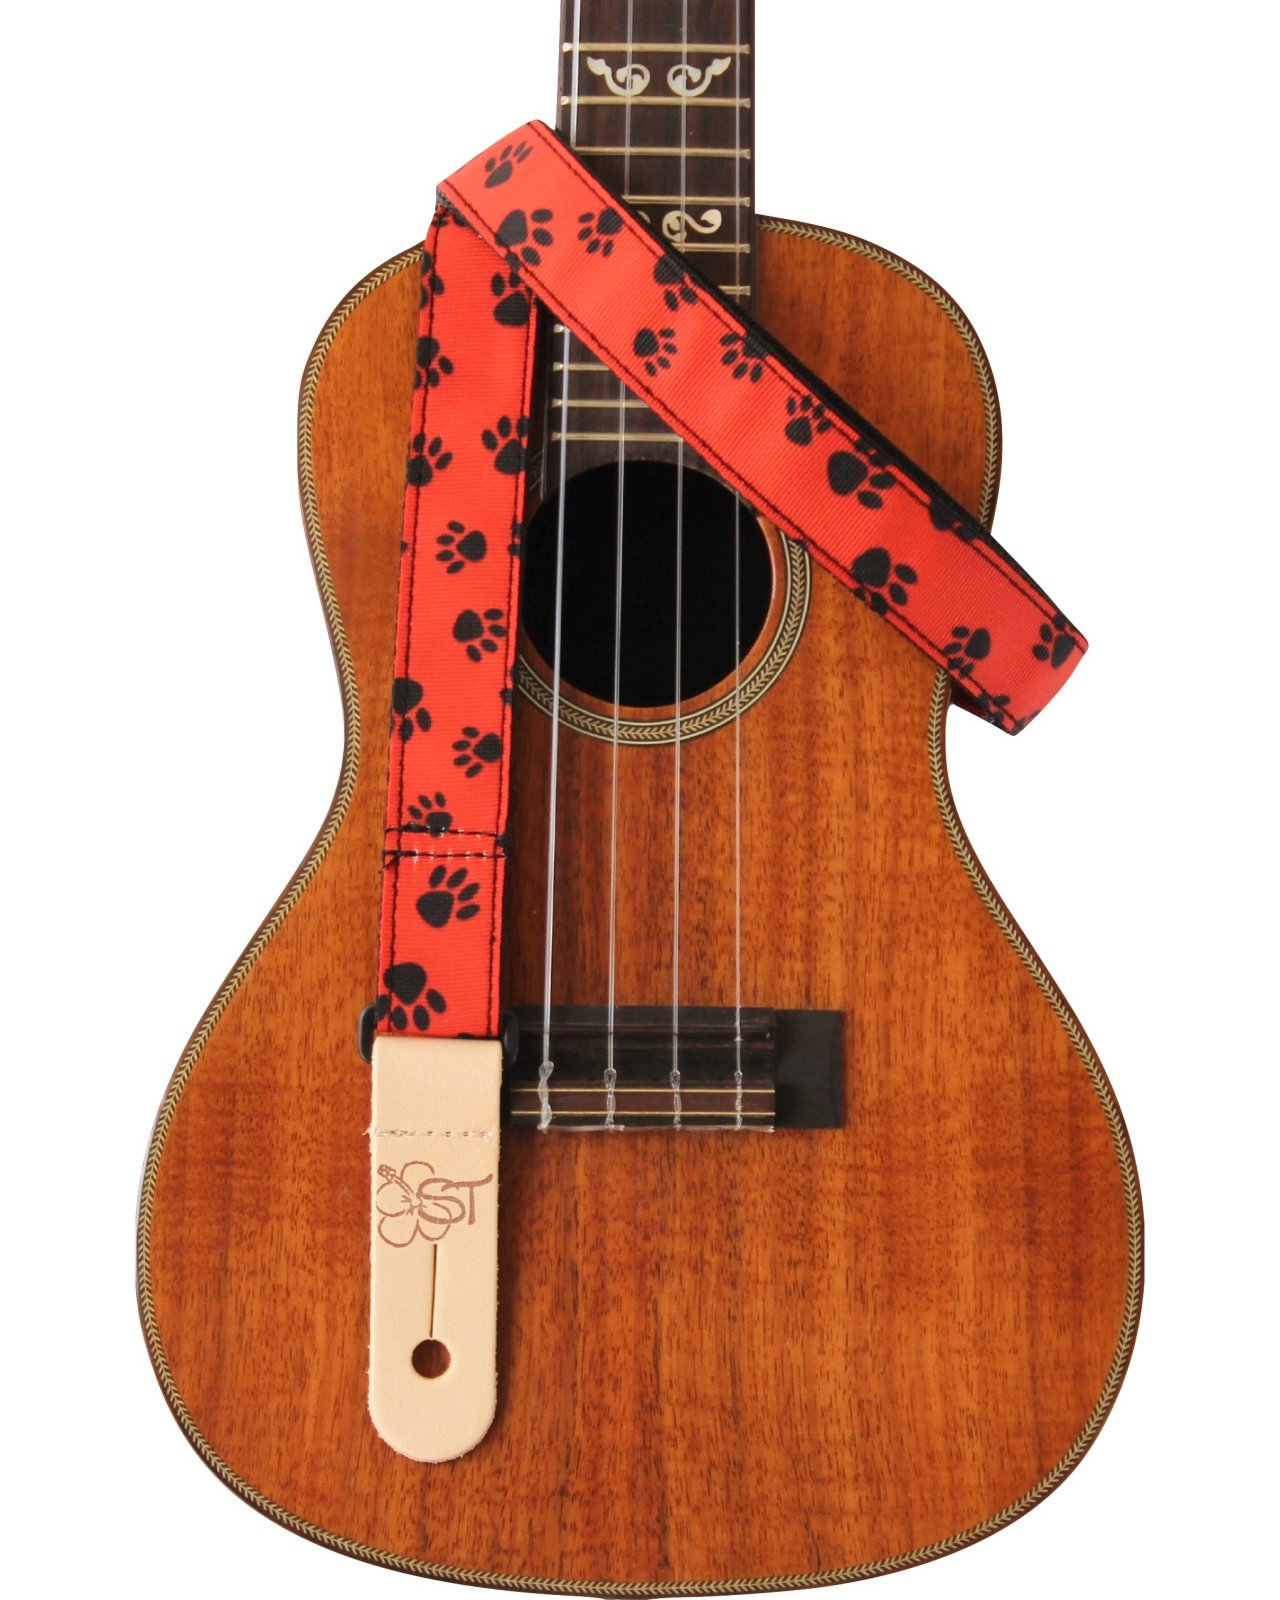 ST 1 Ukulele Strap - Paw Prints on Red